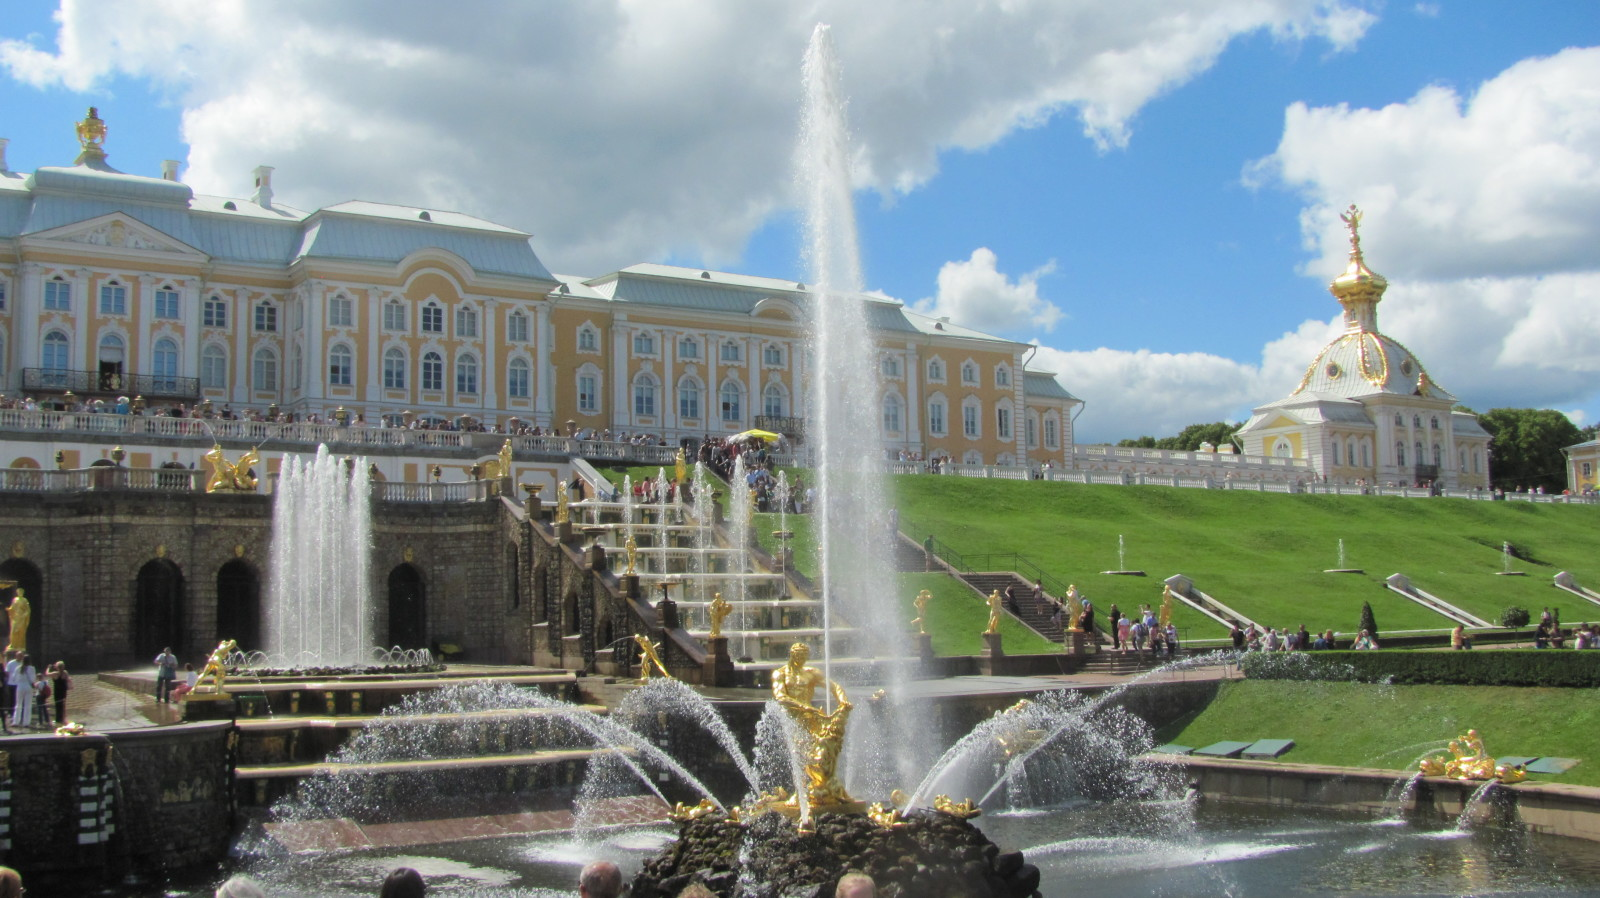 Samson Fountain at Peterhof